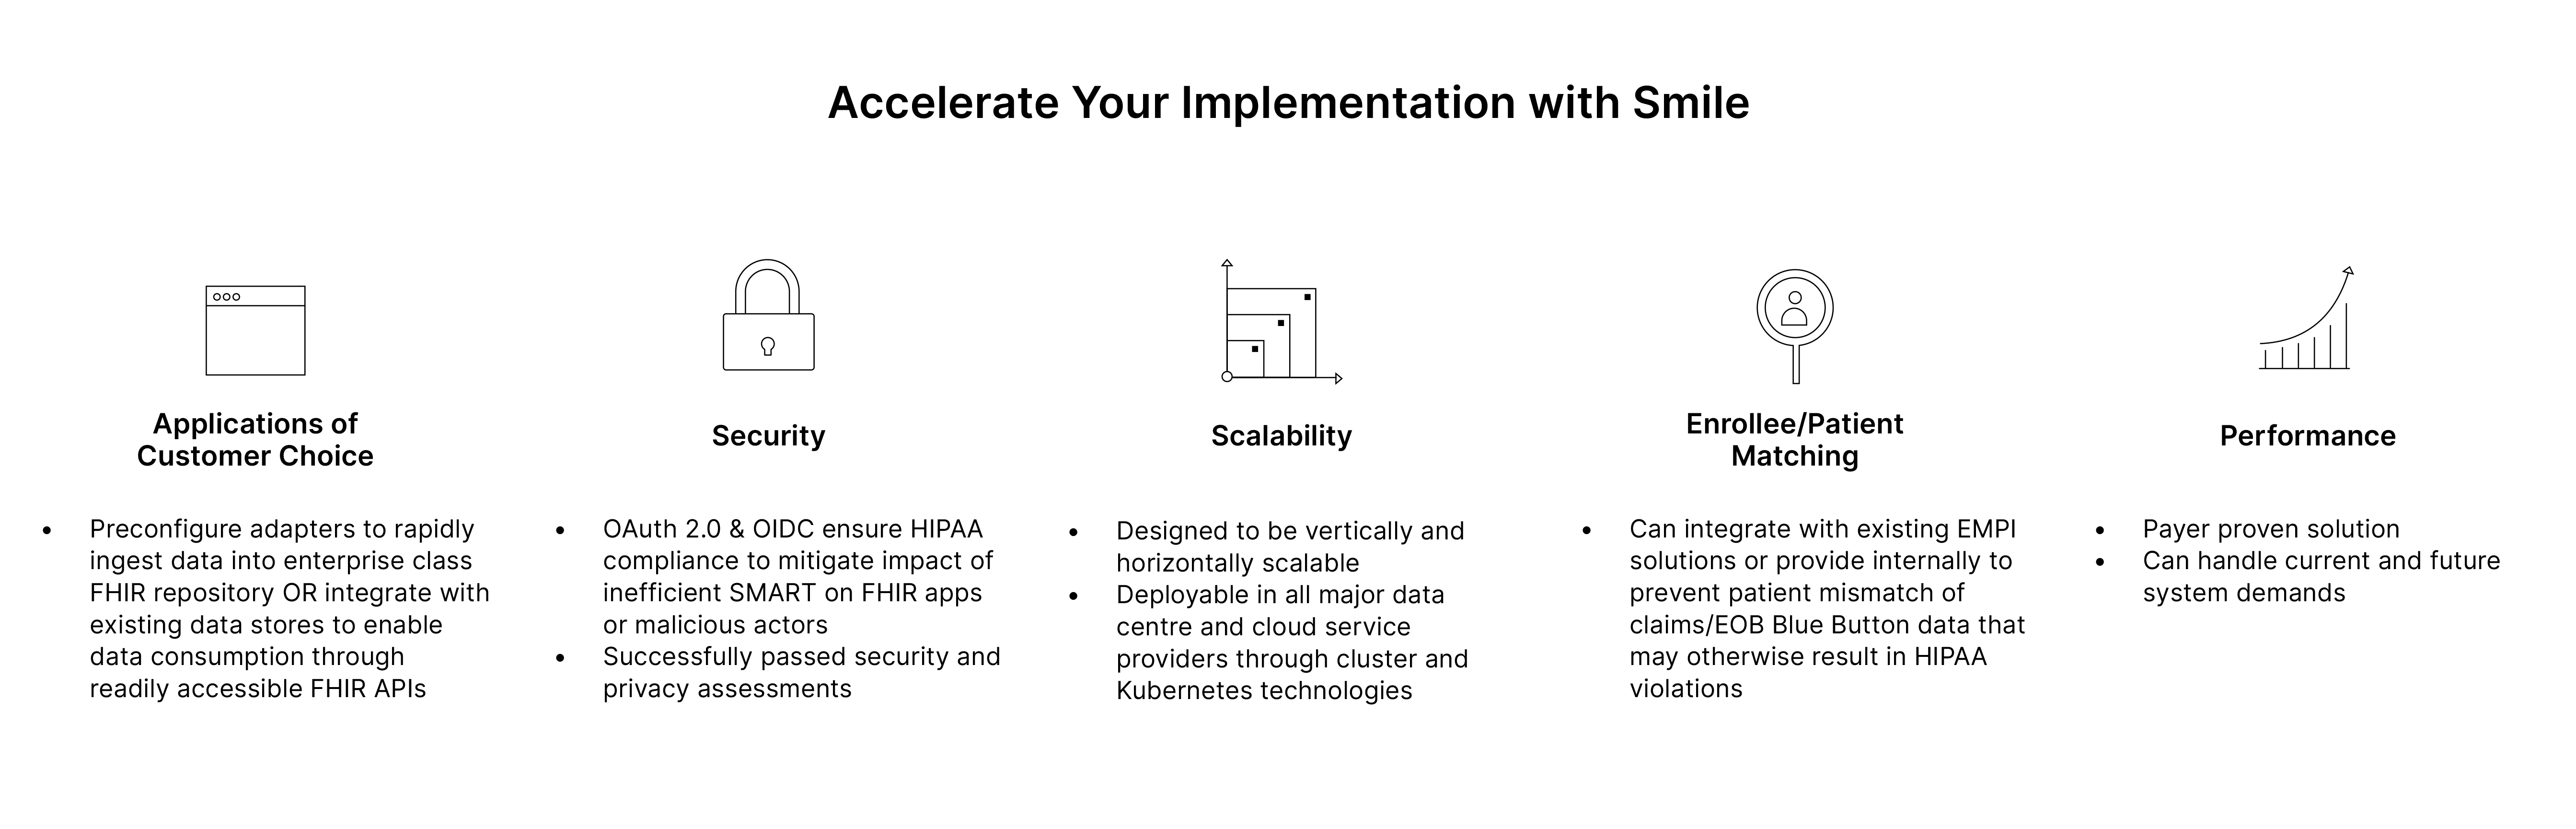 Ways to accelerate your implementation with Smile CDR